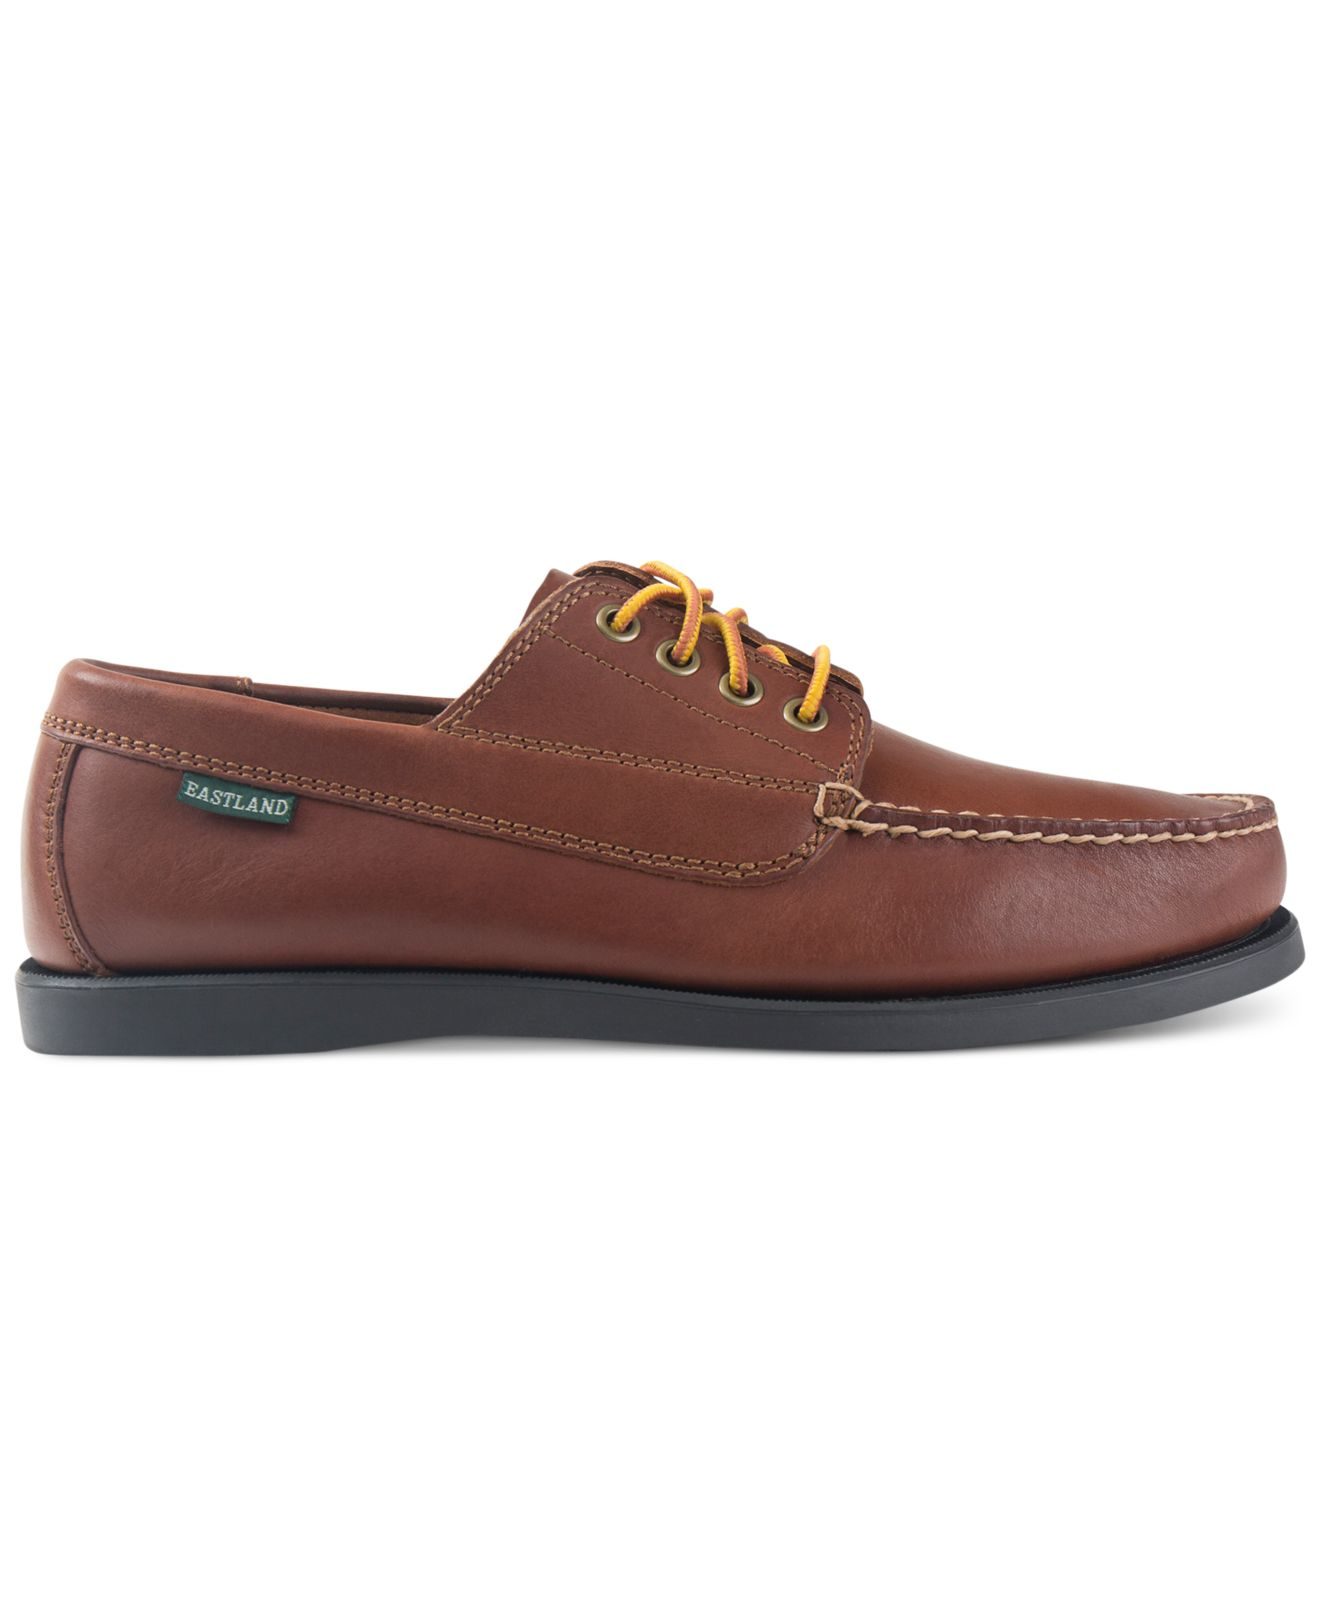 Eastland Boat Shoes Leather